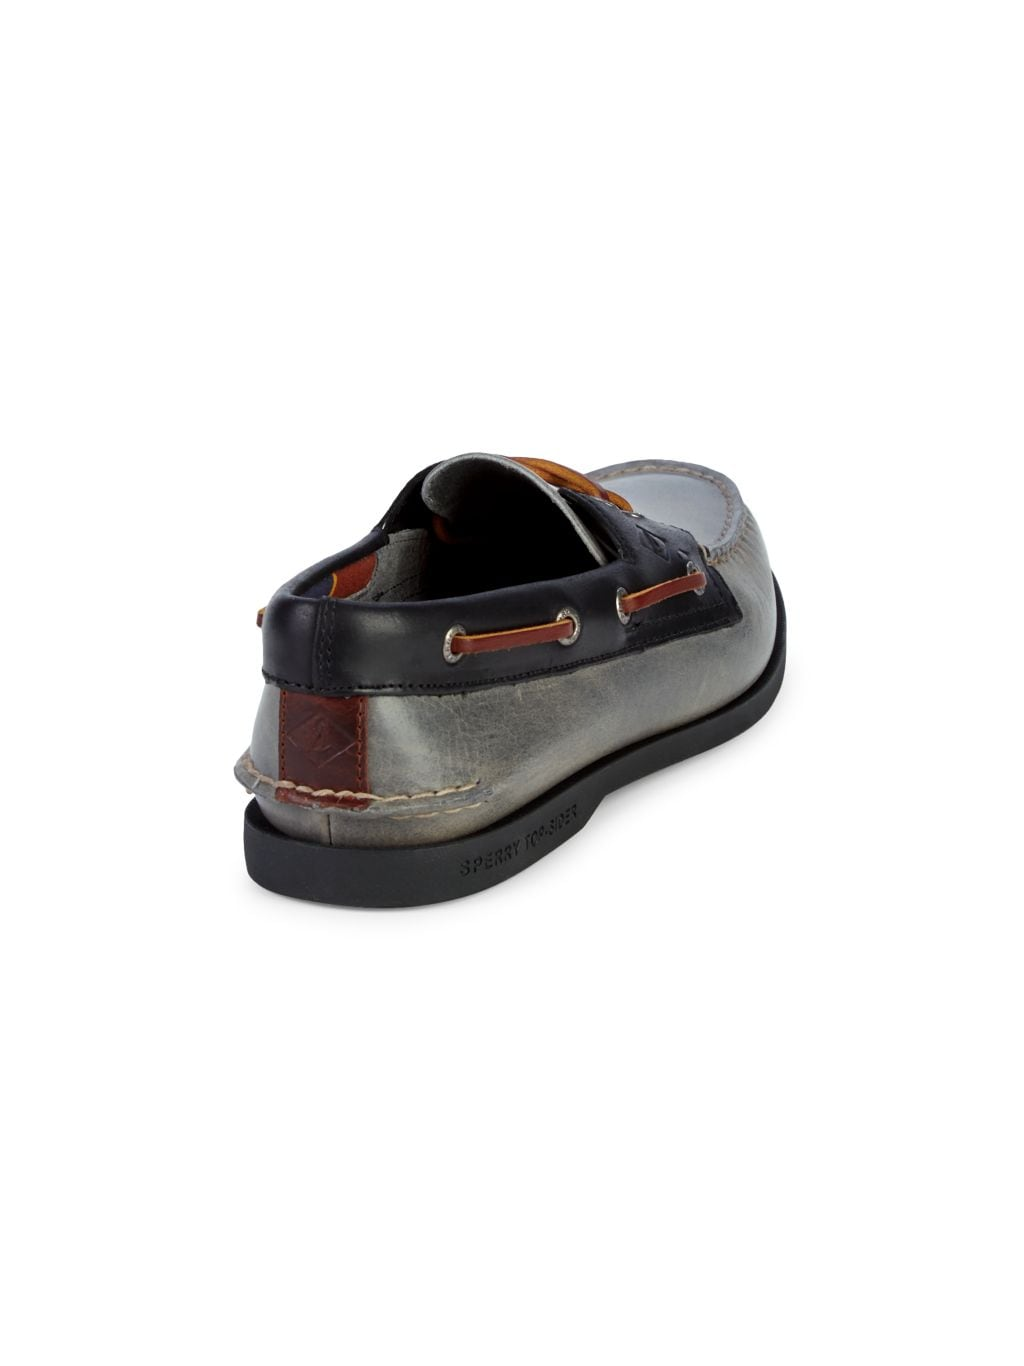 Sperry Leather Boat Shoe Loafers